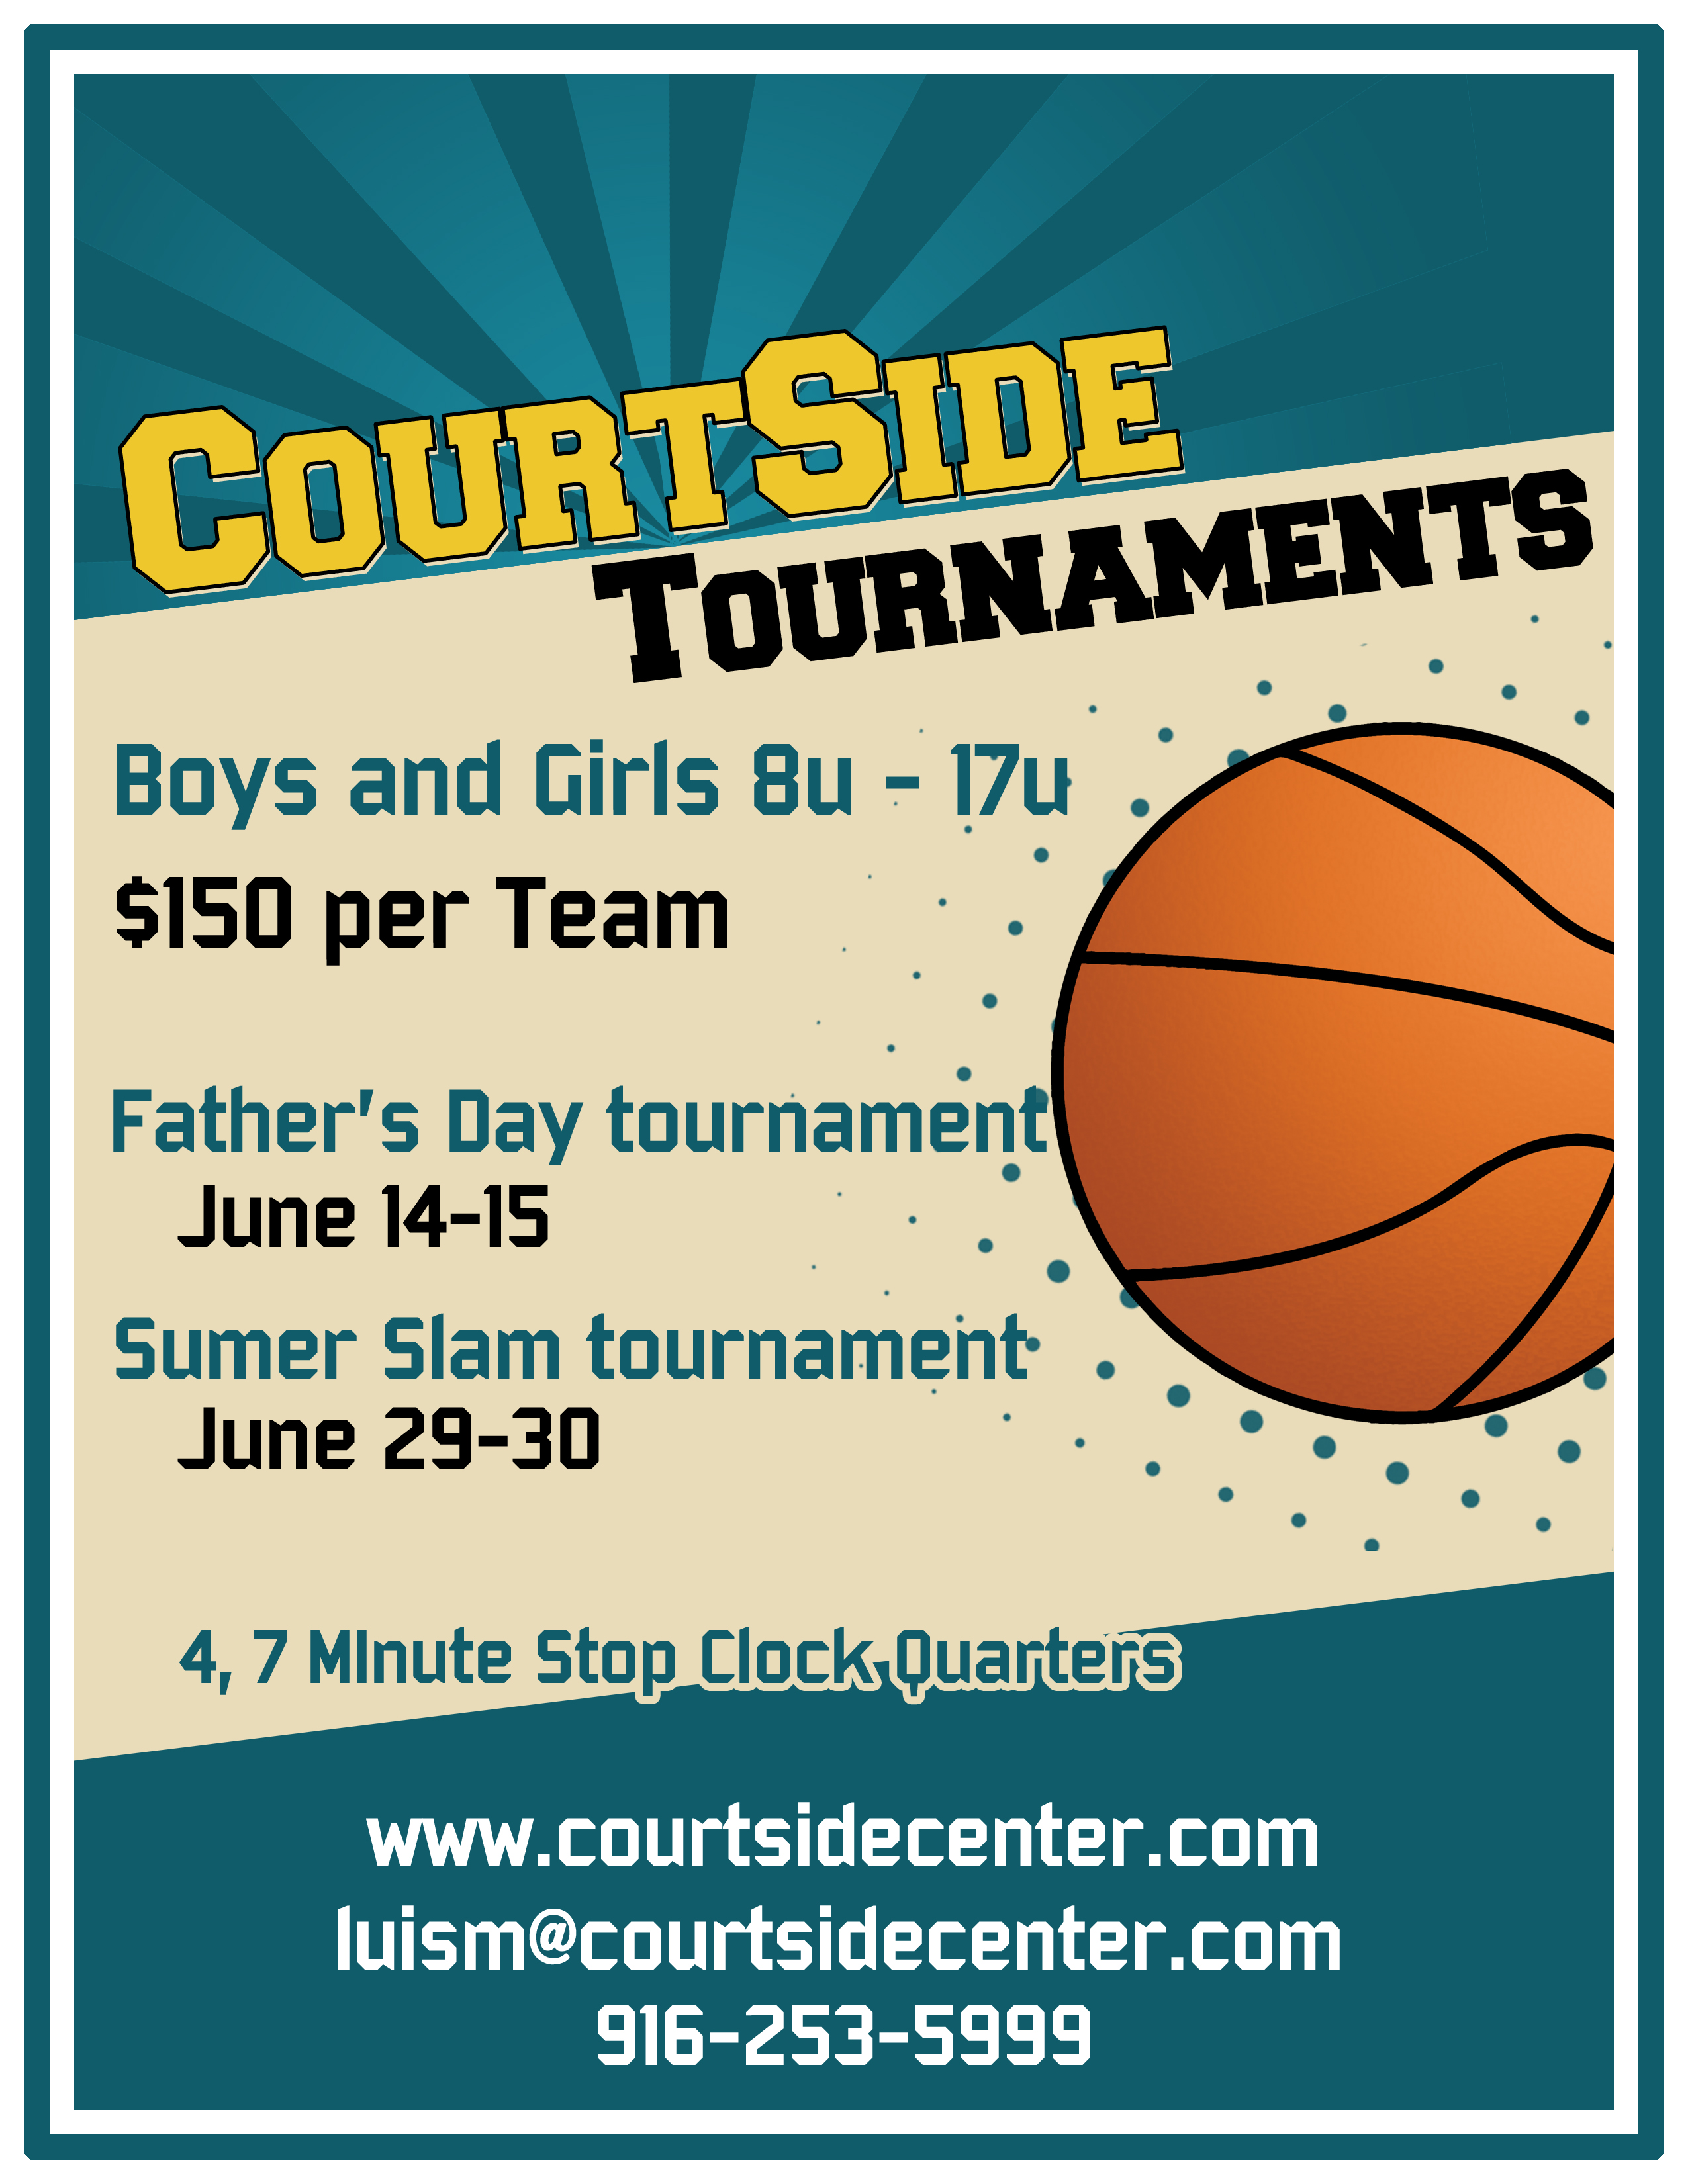 Courtside Basketball Tournaments